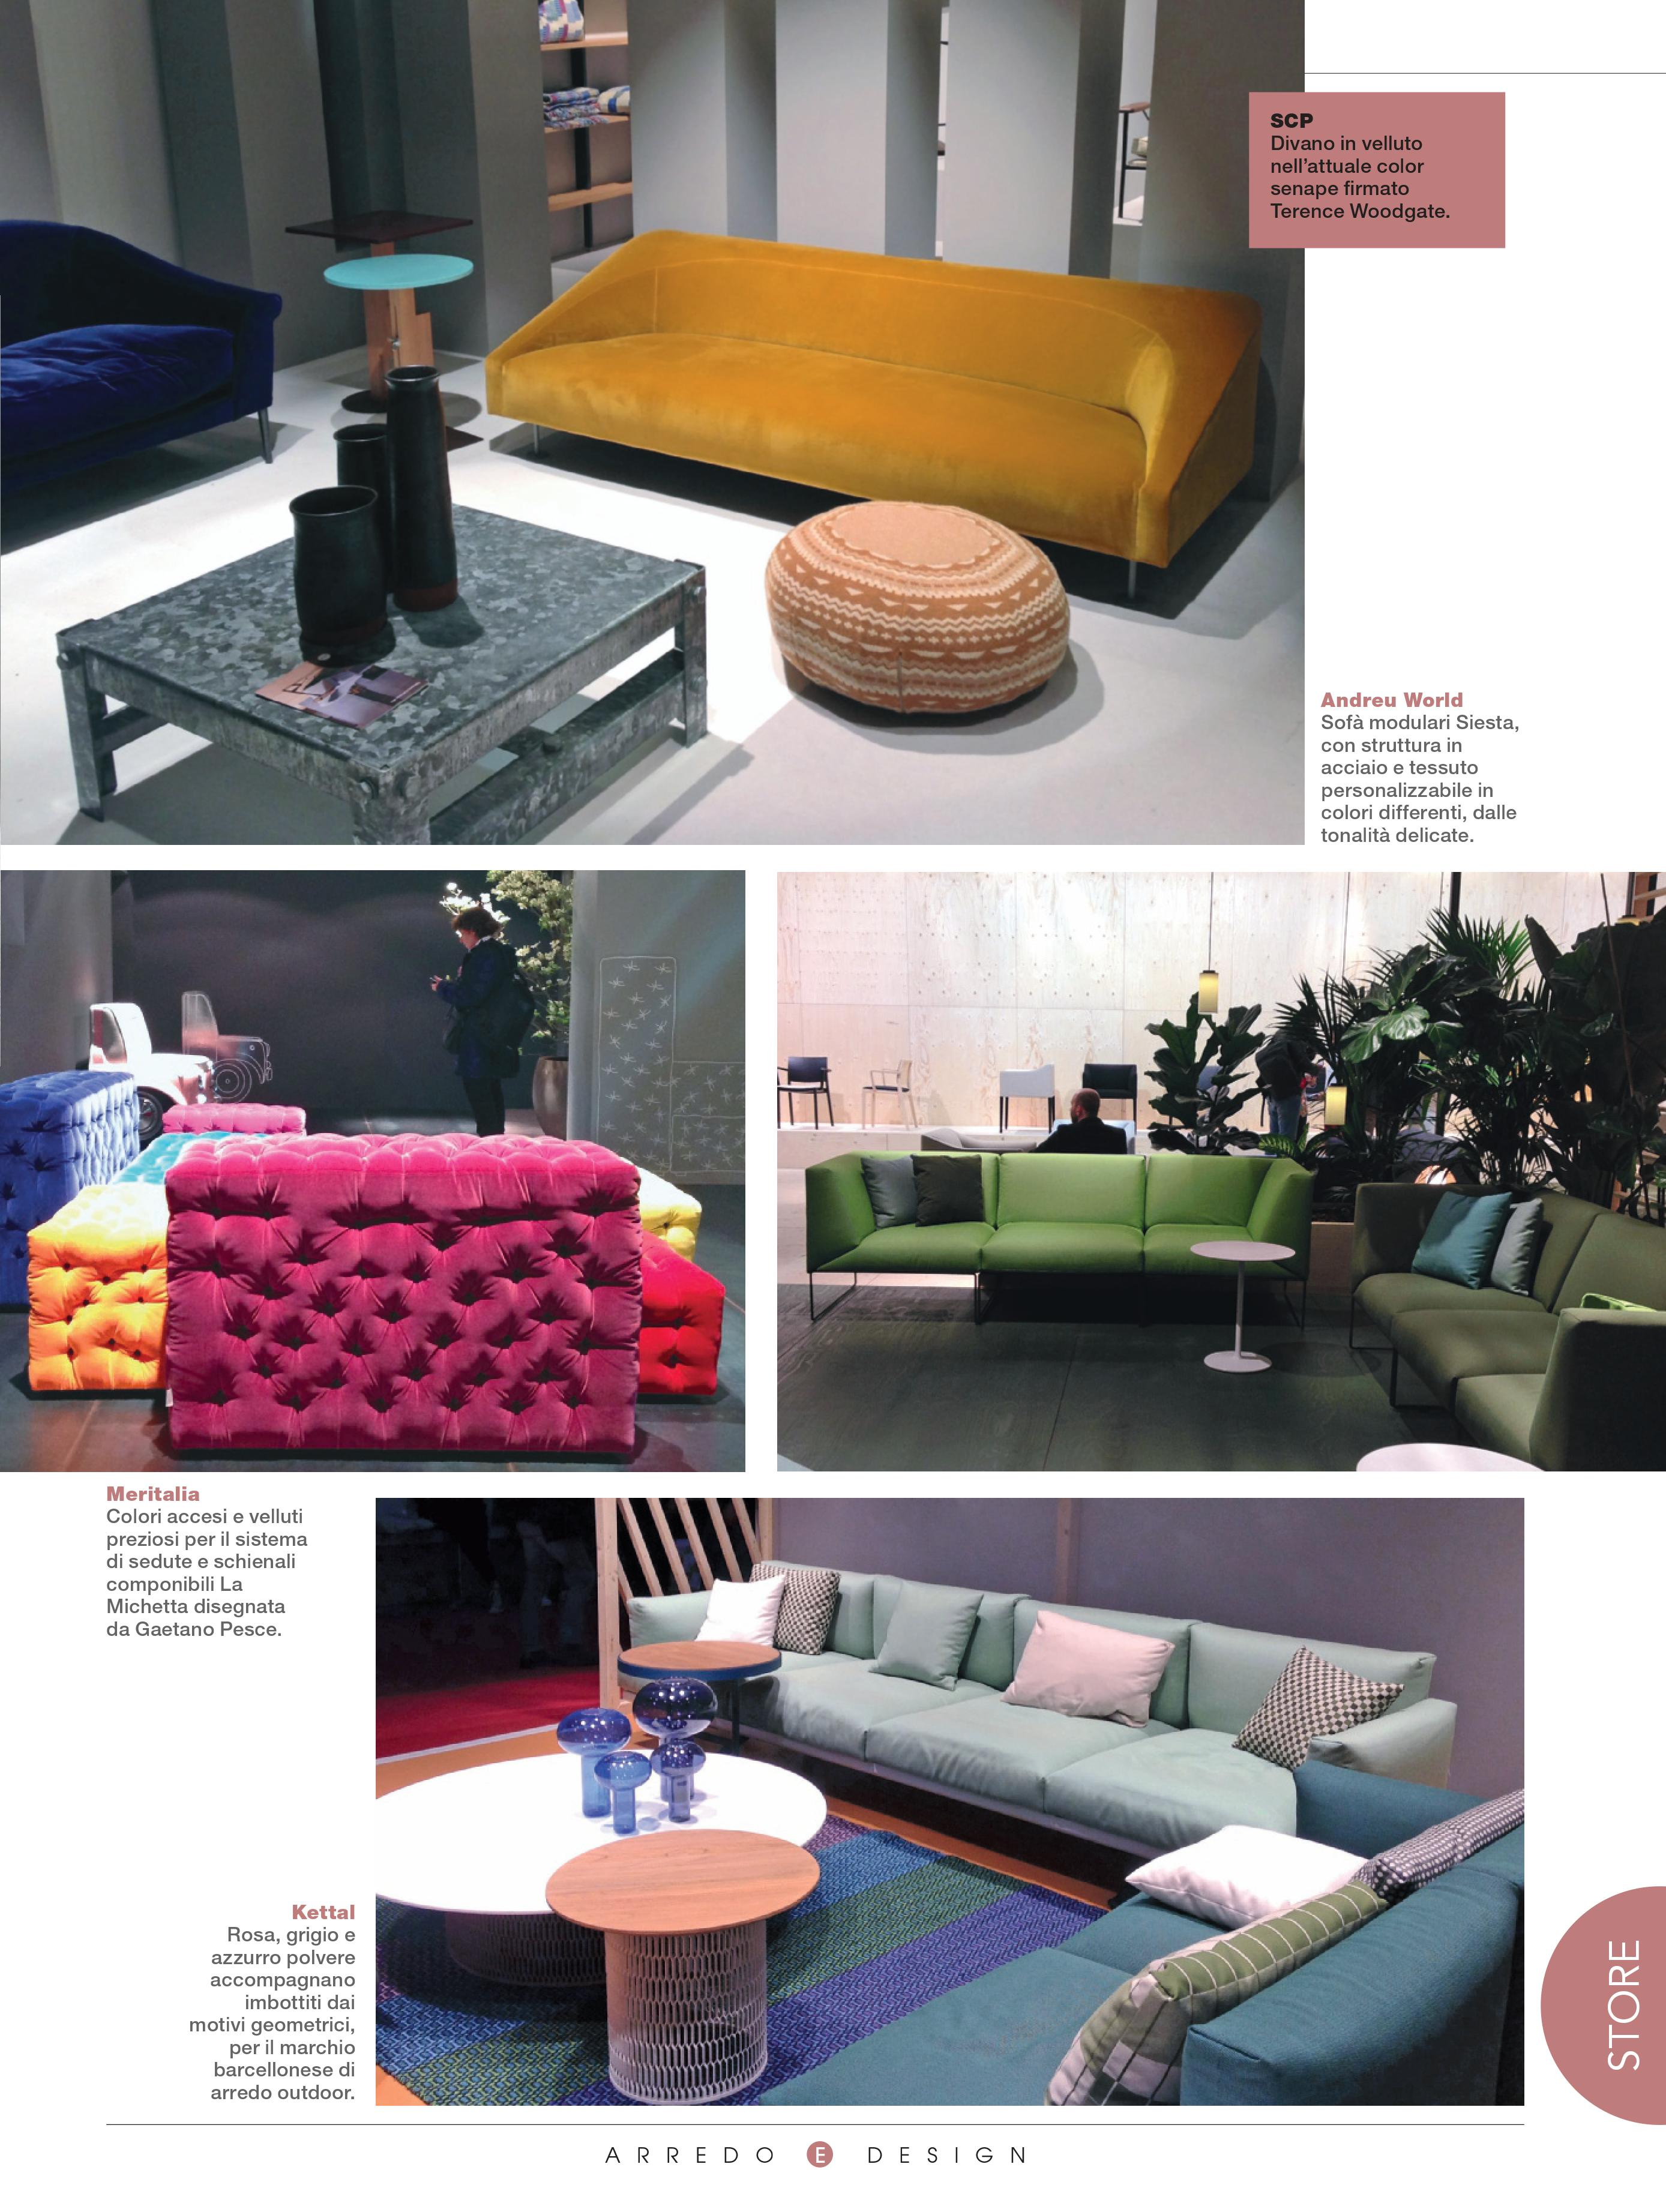 Speciale Salone del Mobile 2016 Arredo e Design News